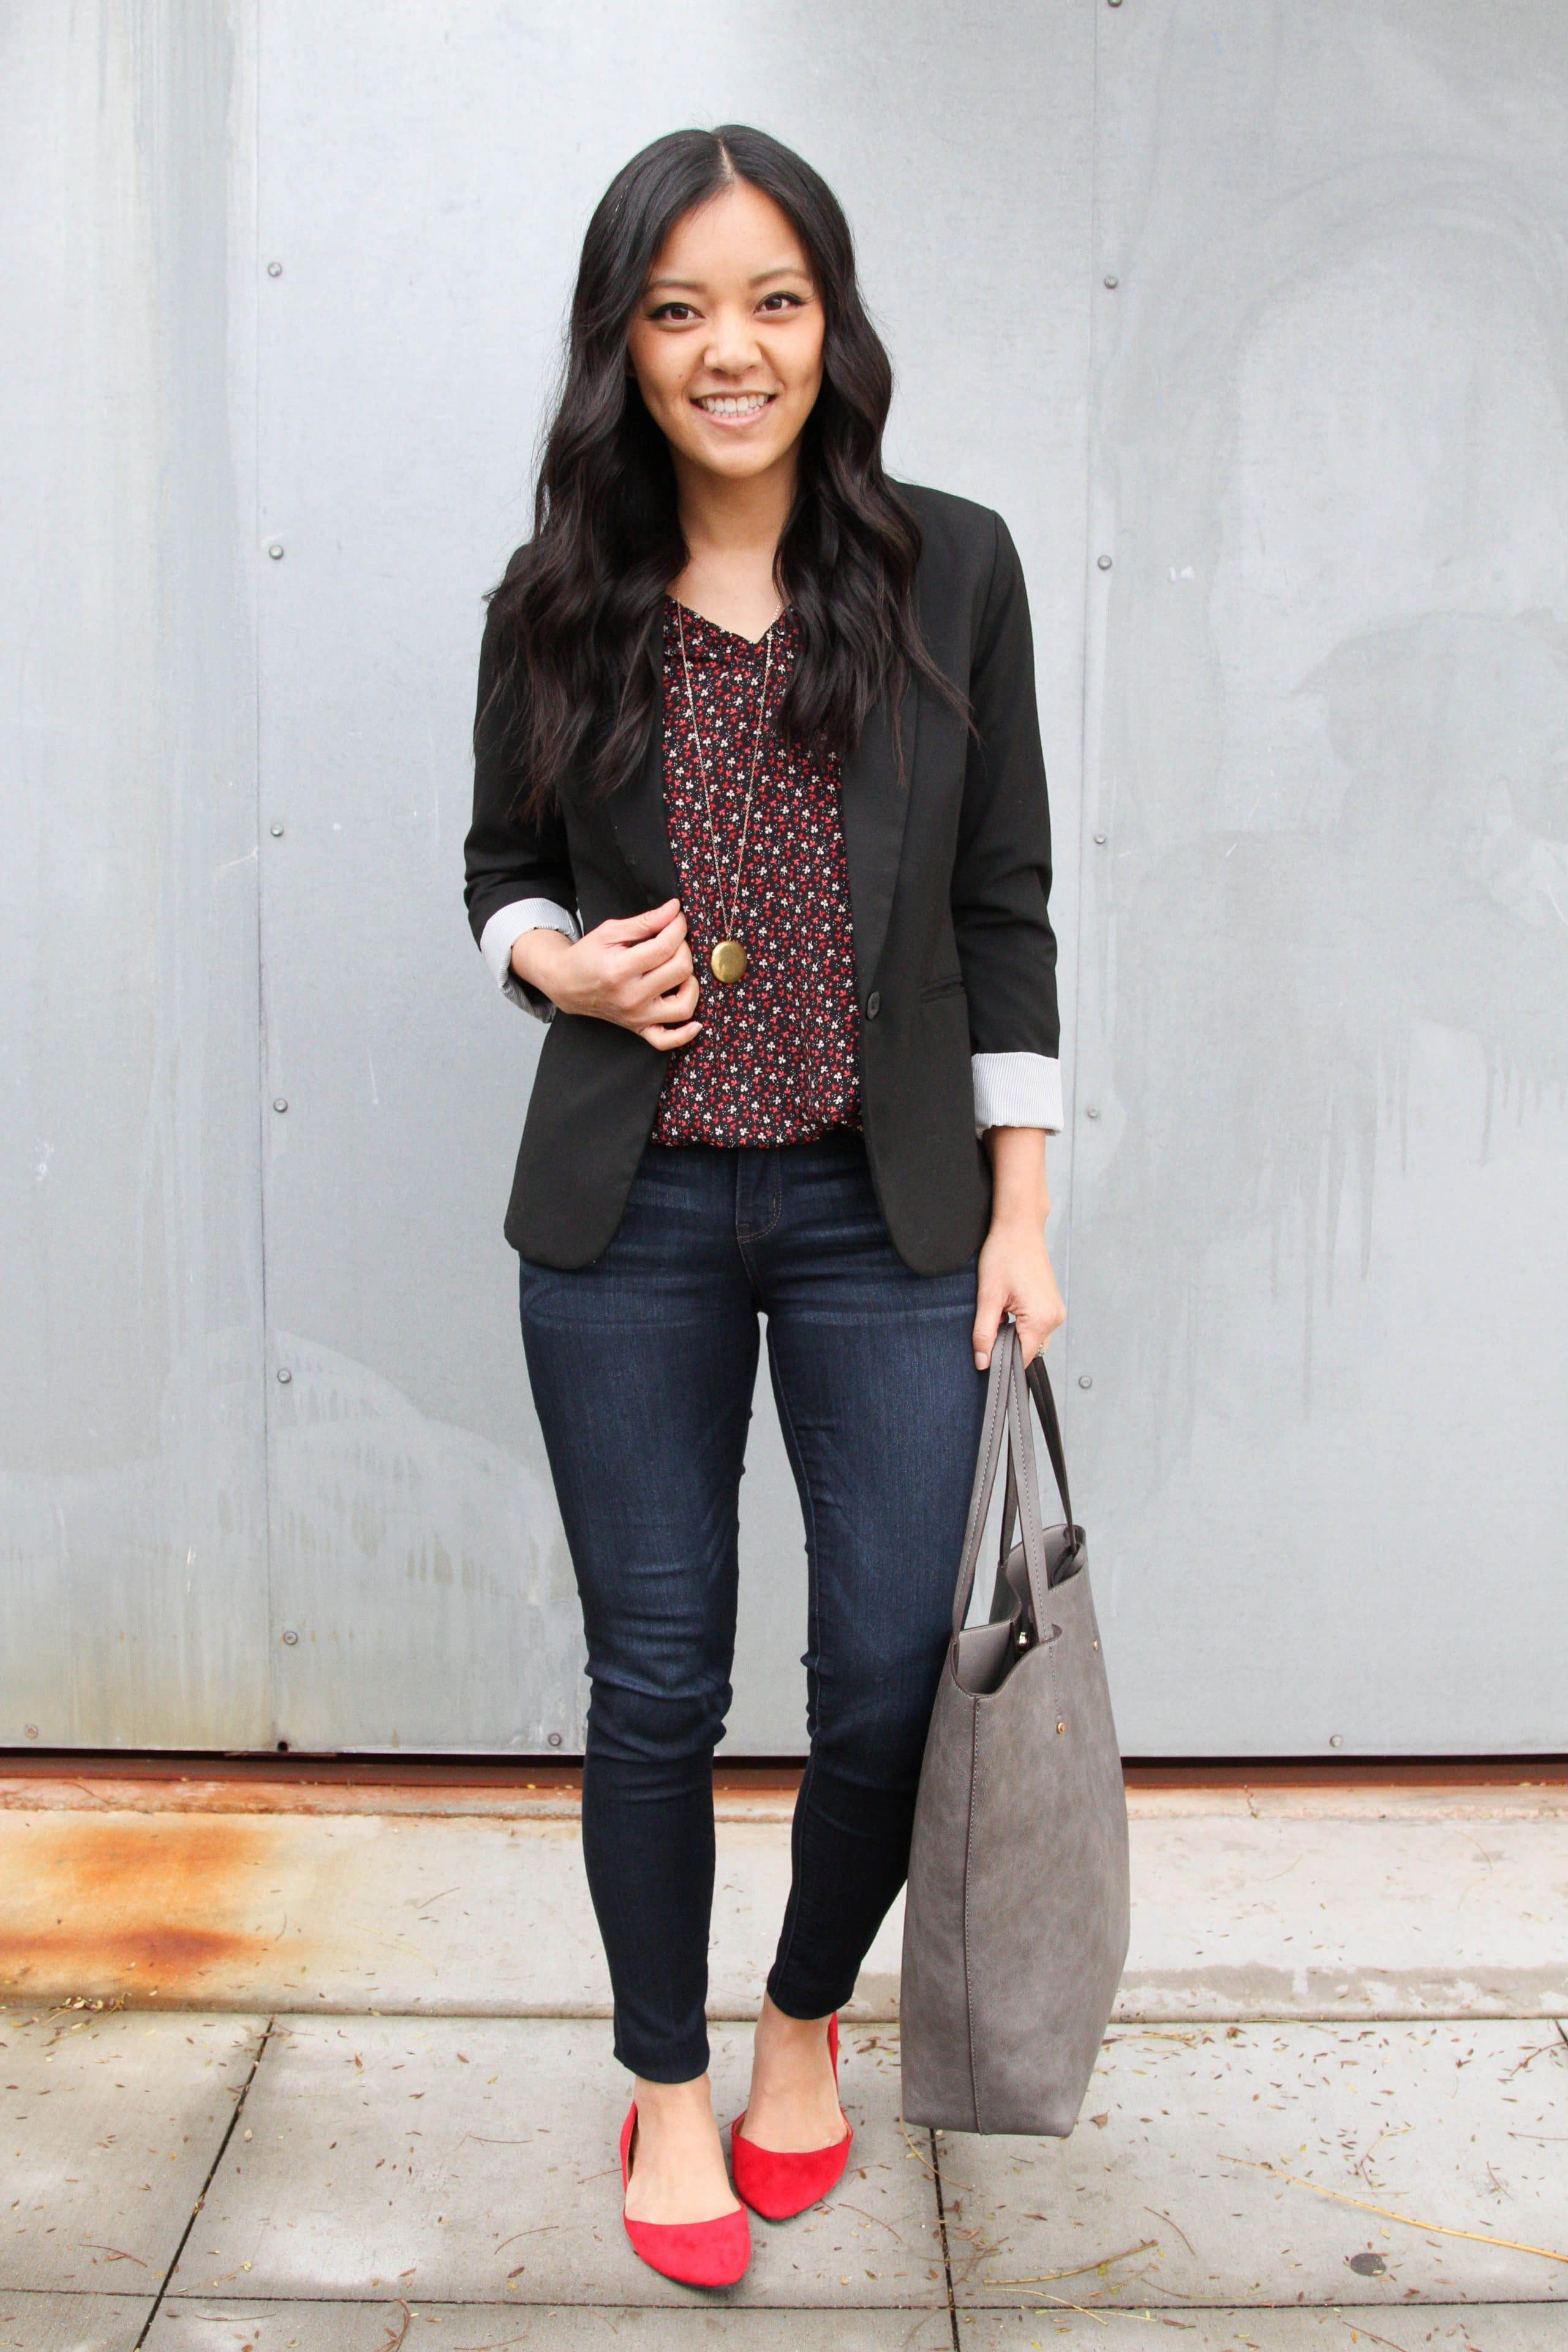 Blazer + Jeans + Red Flats + Tote + Pendant